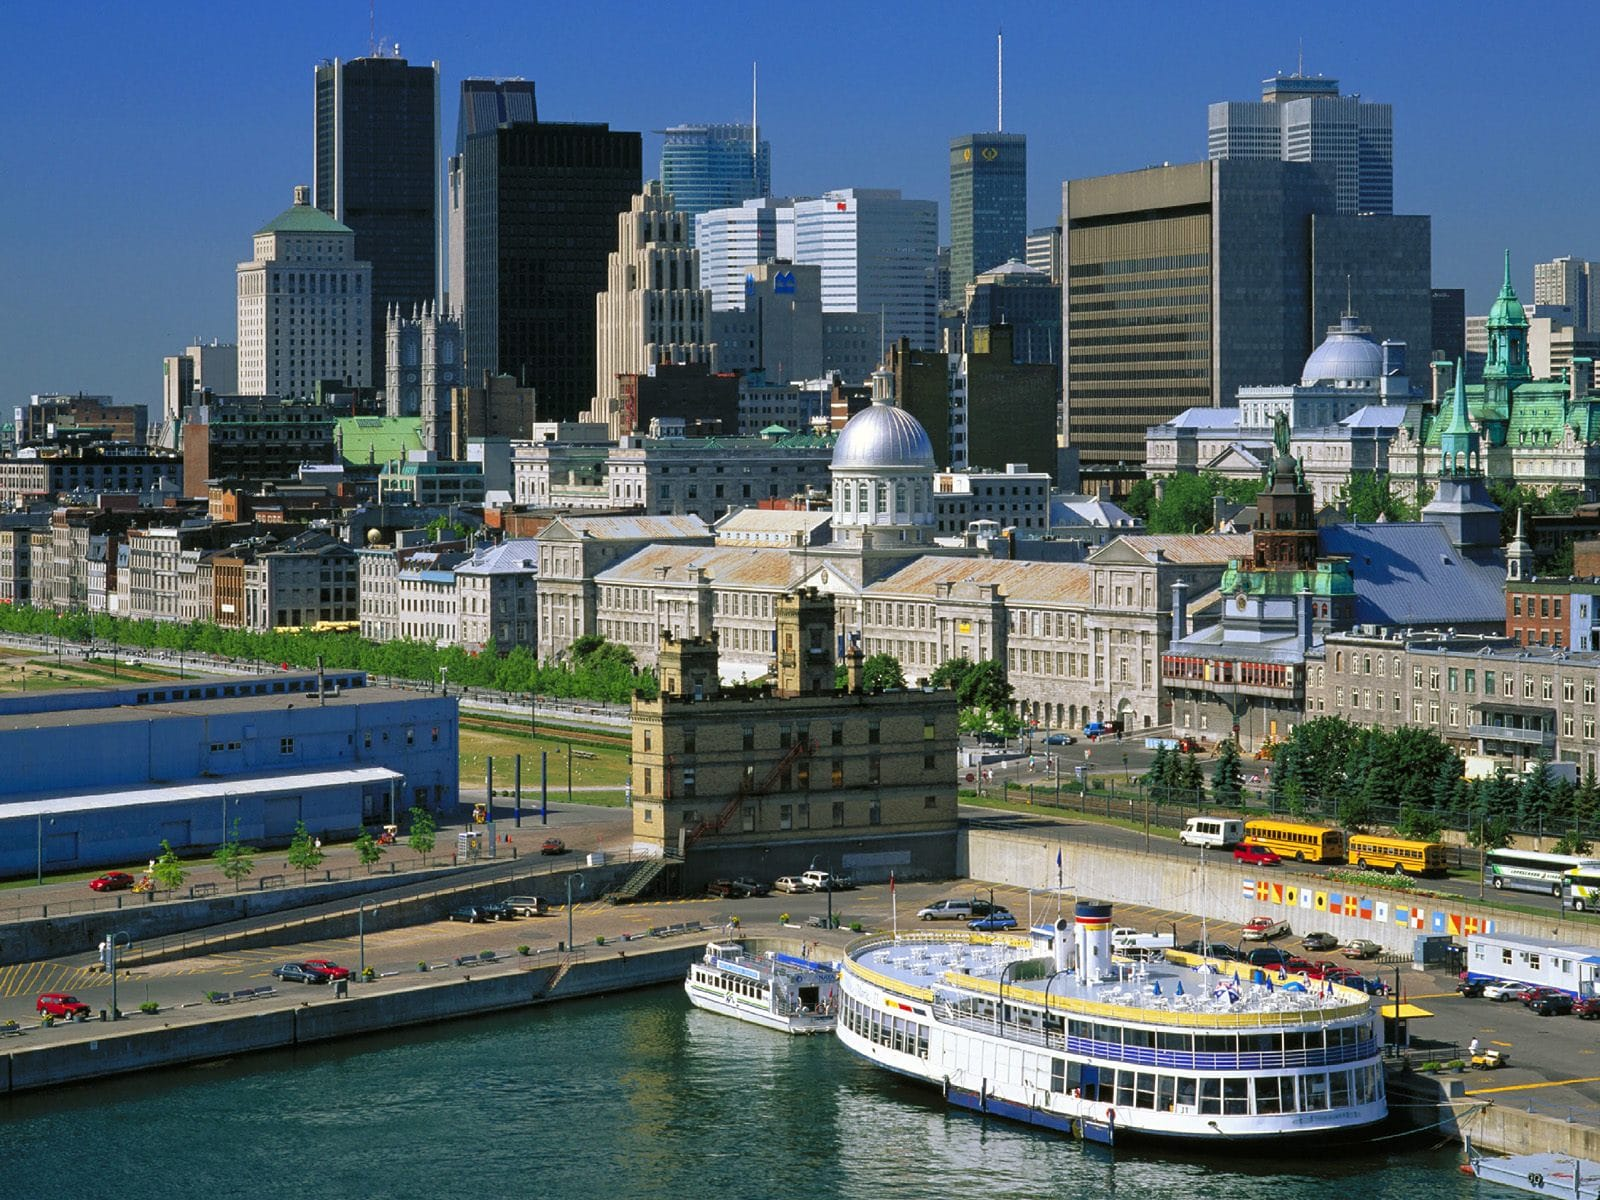 The tourists guide to montreal during the grand prix weekend the tourists guide to montreal during the grand prix weekend solutioingenieria Image collections